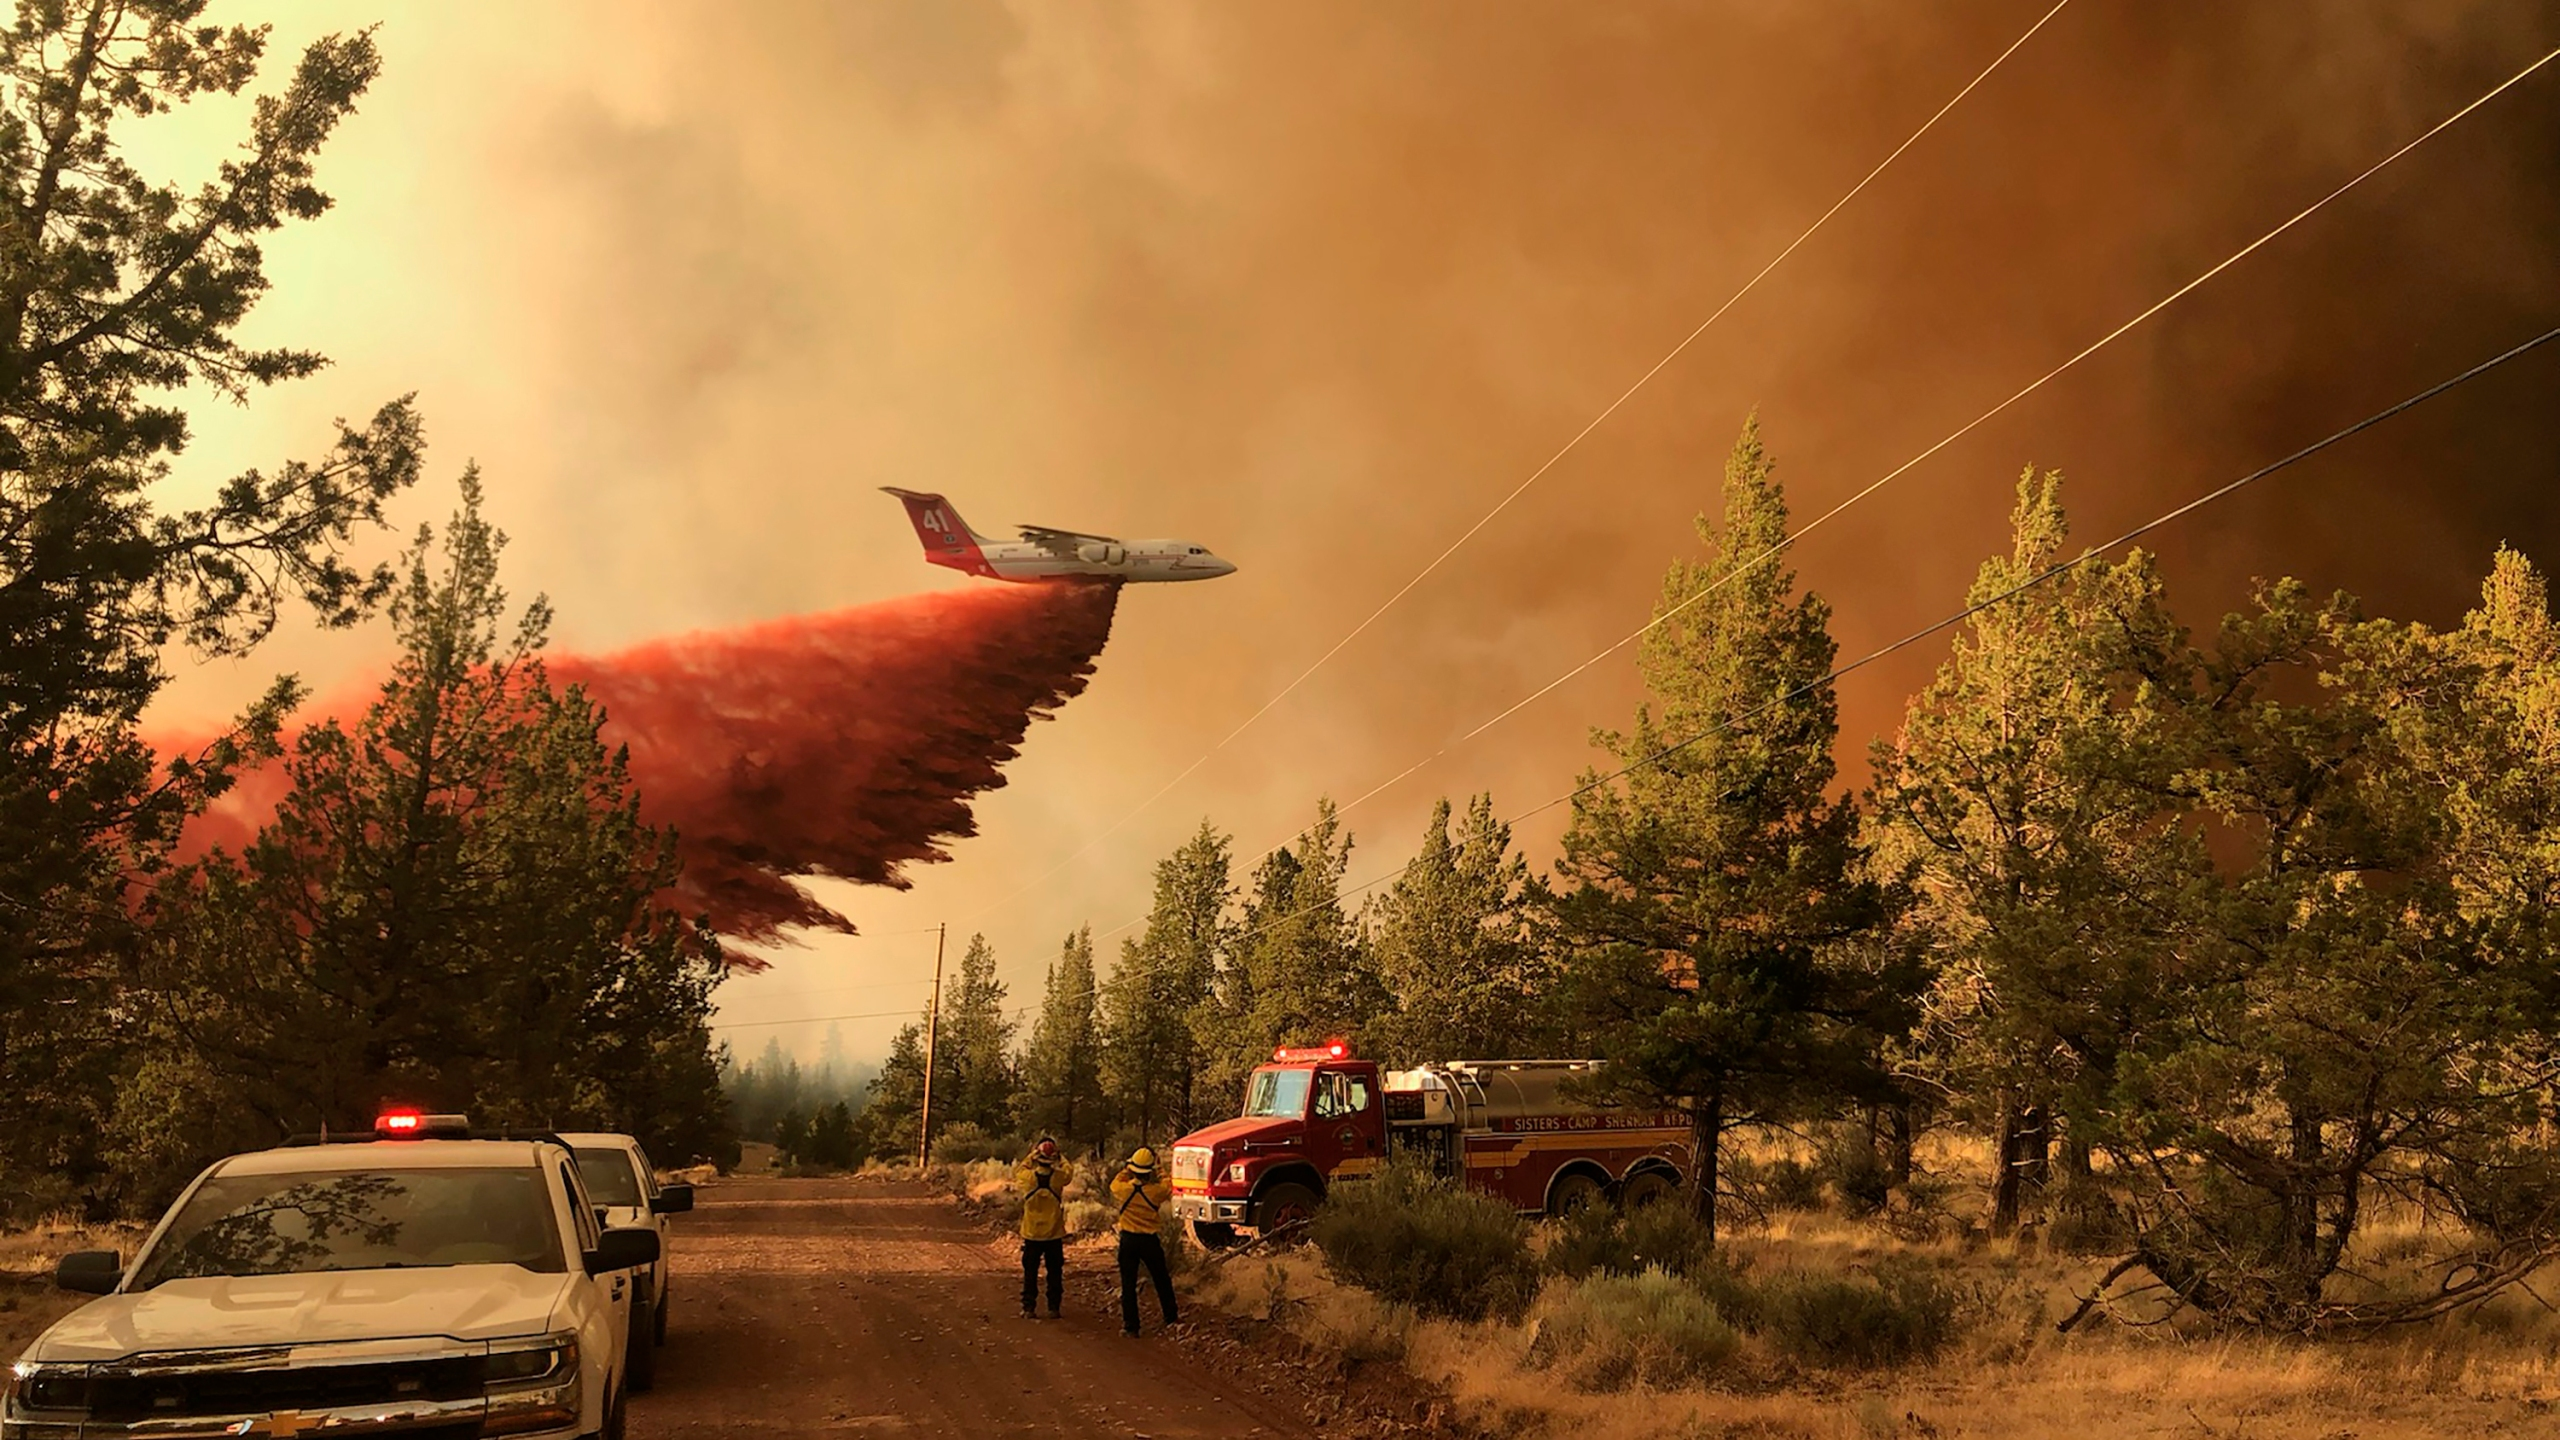 This photo provided by the Oregon Department of Forestry shows a firefighting tanker making a retardant drop over the Grandview Fire near Sisters, Ore., Sunday, July 11, 2021. (Oregon Department of Forestry via AP)